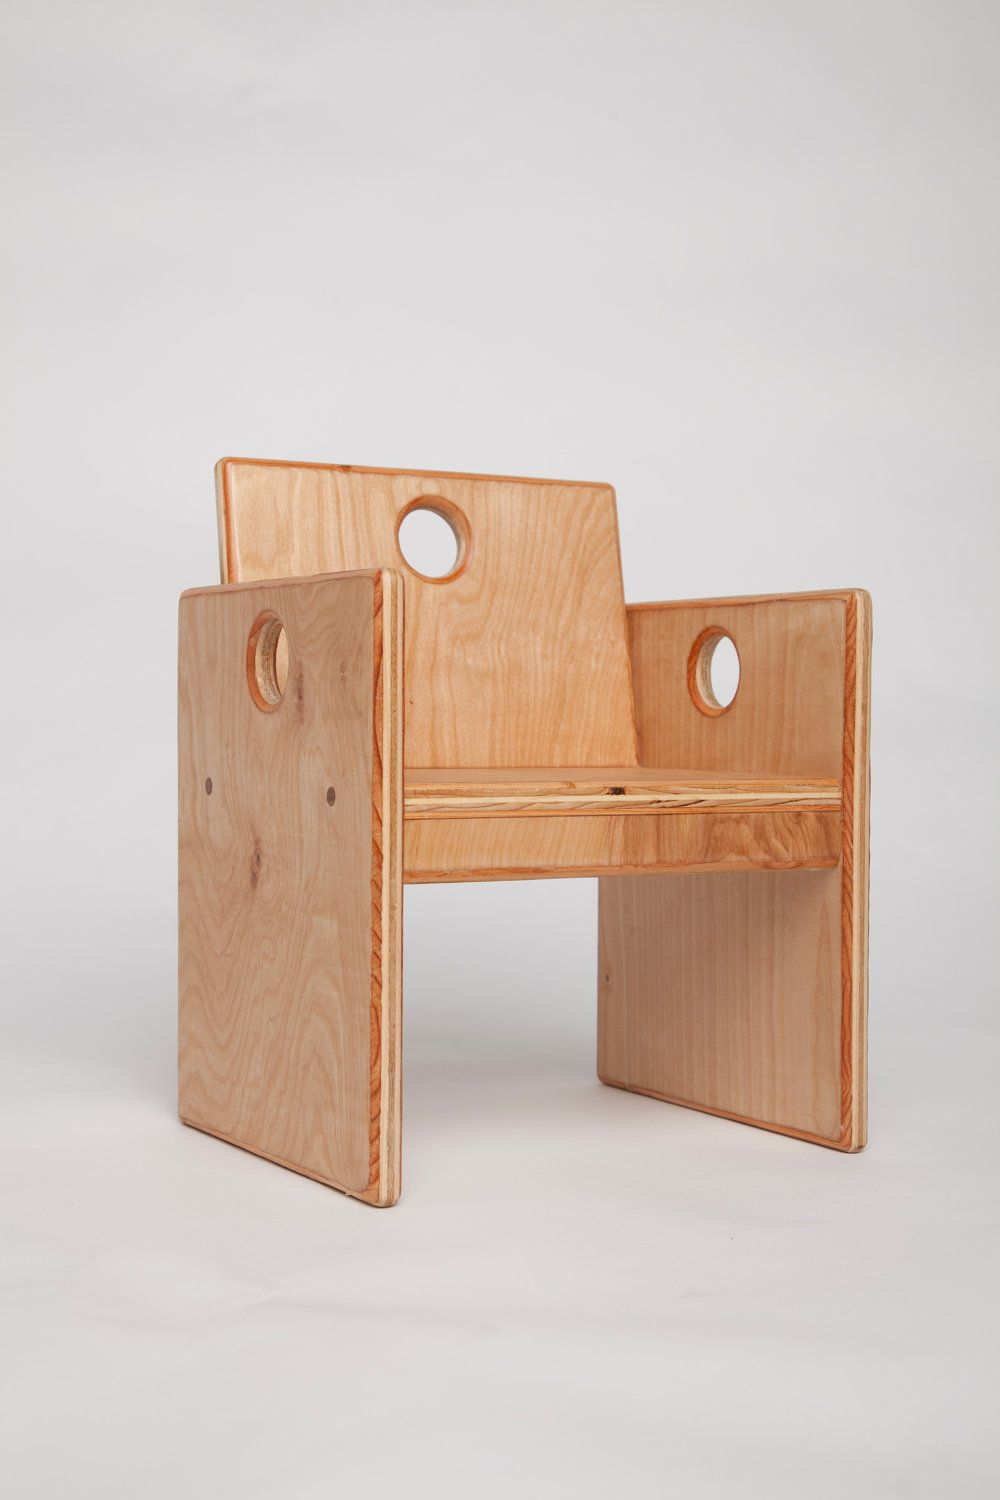 Wooden Toddlers Chair 57 00 From Steve Fast On Etsy